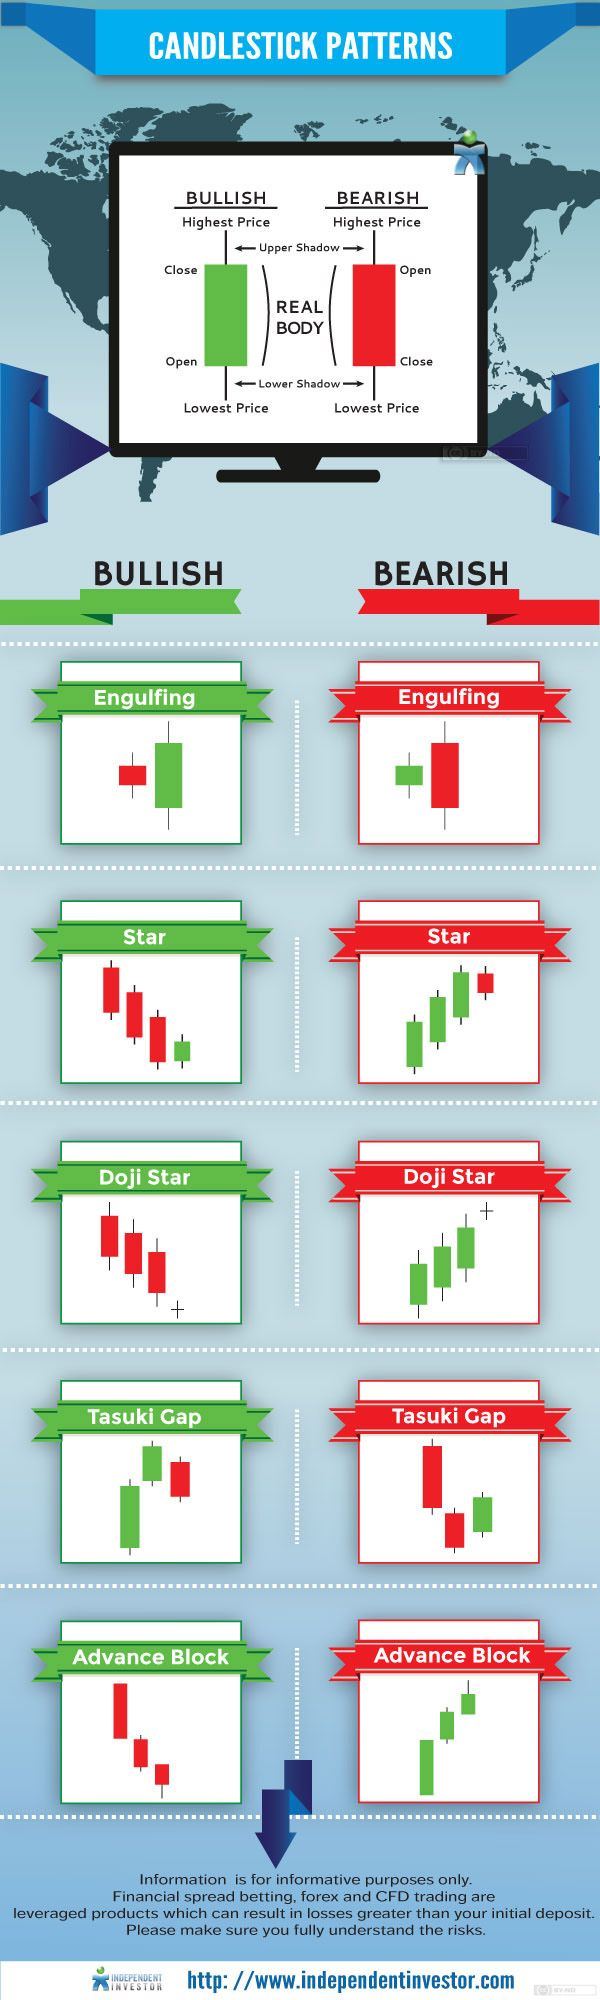 #candlestick_patterns #day_trading #independentinvestor - check more >> http://binaryblog.net